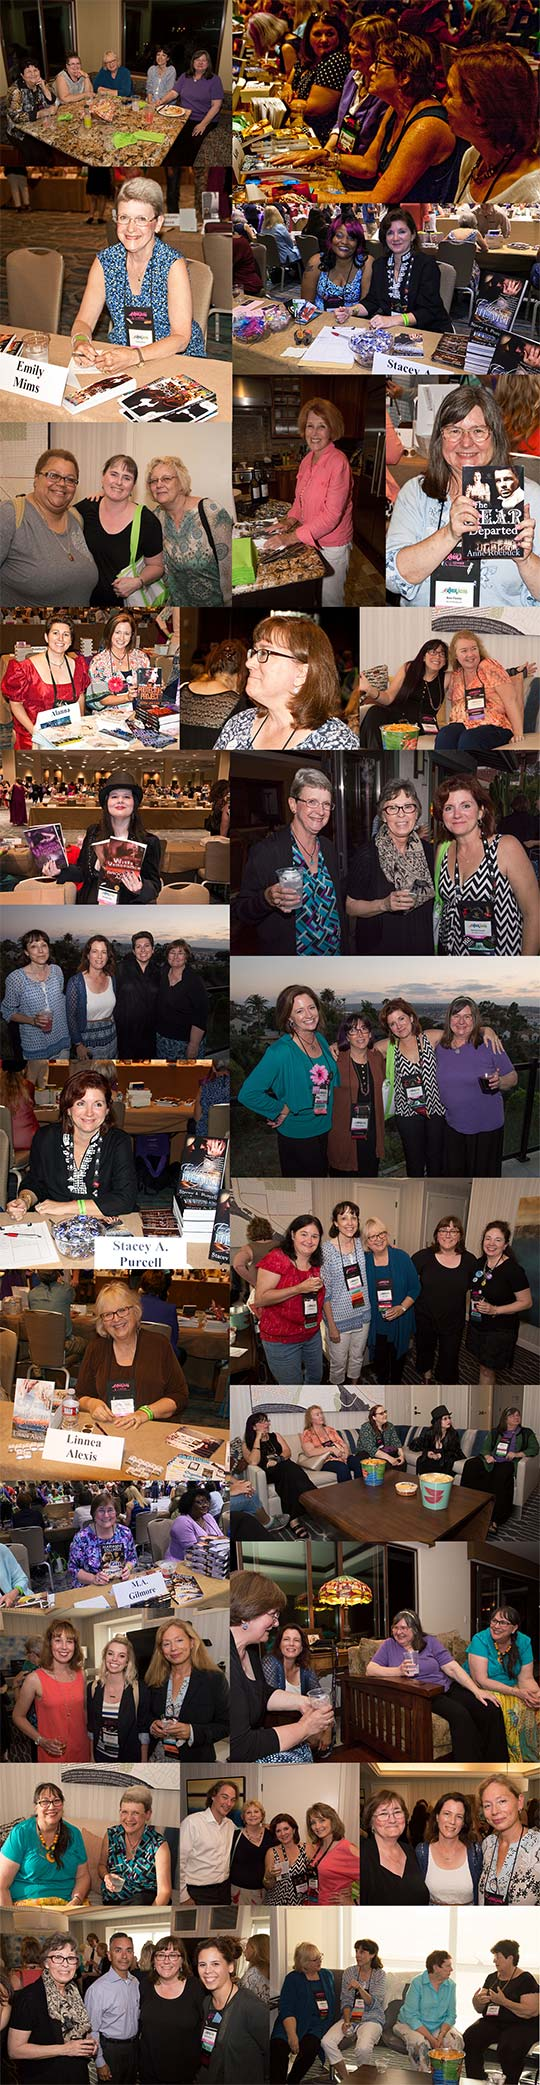 Photos from San Diego - RWA 2016